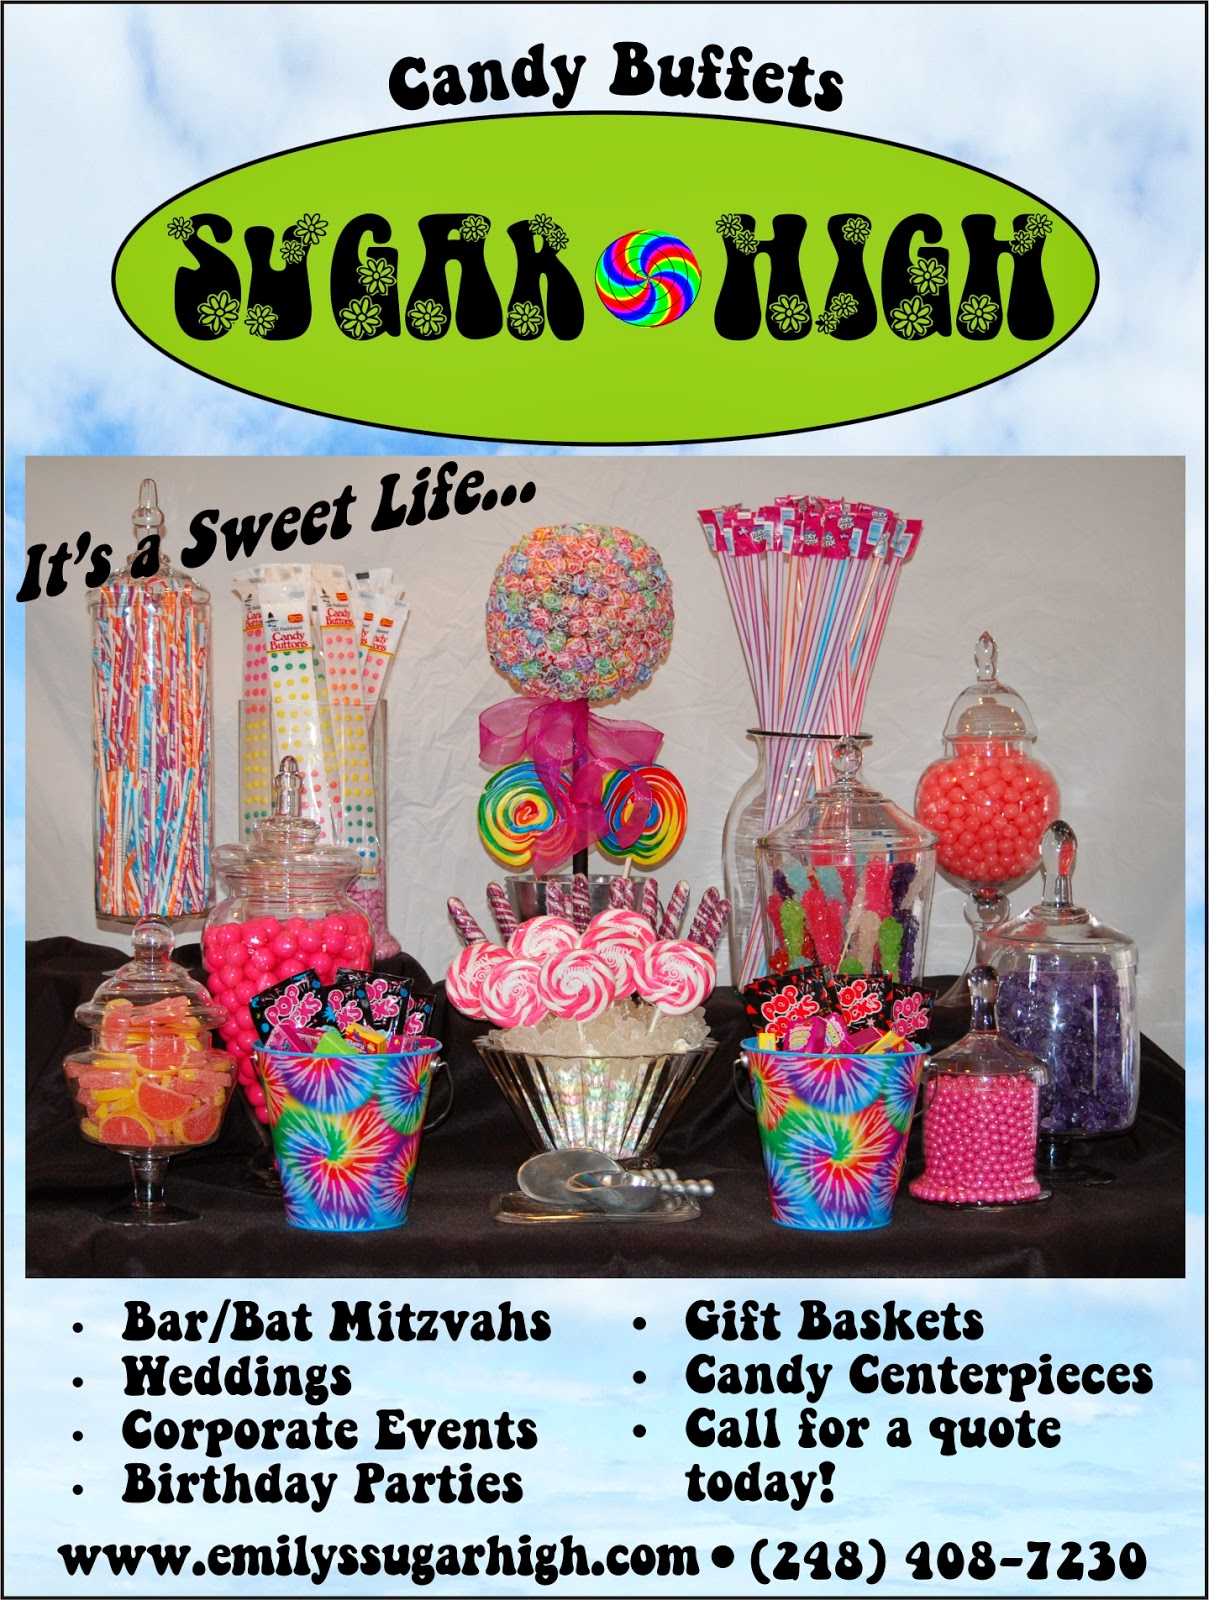 Sugar High - The Journey of Starting My Own Candy Company